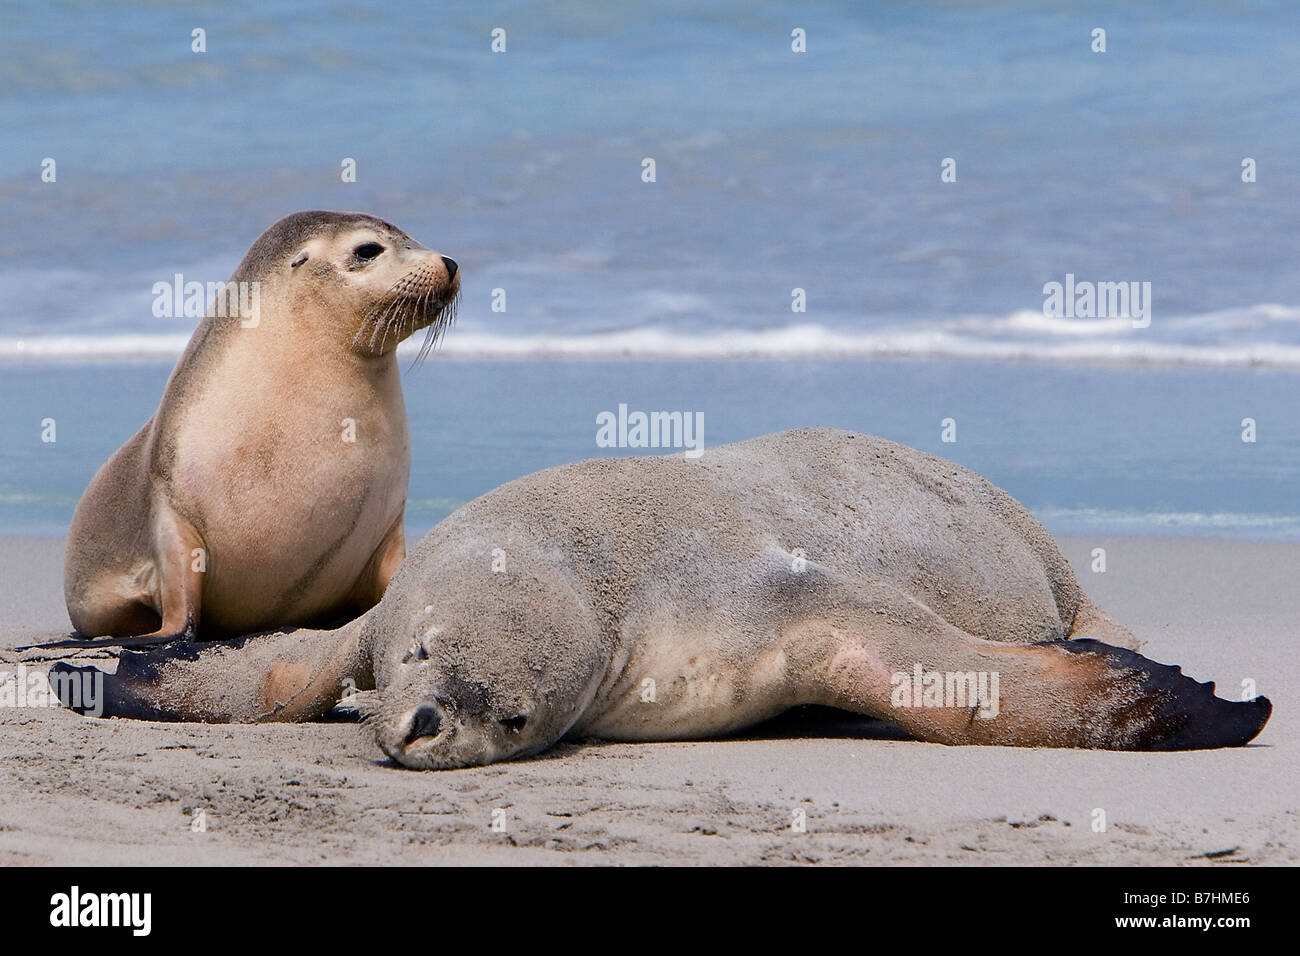 Two Australian sea lions basking by the water's edge, Seal Bay Conservation Park, Kangaroo Island, South Australia Stock Photo